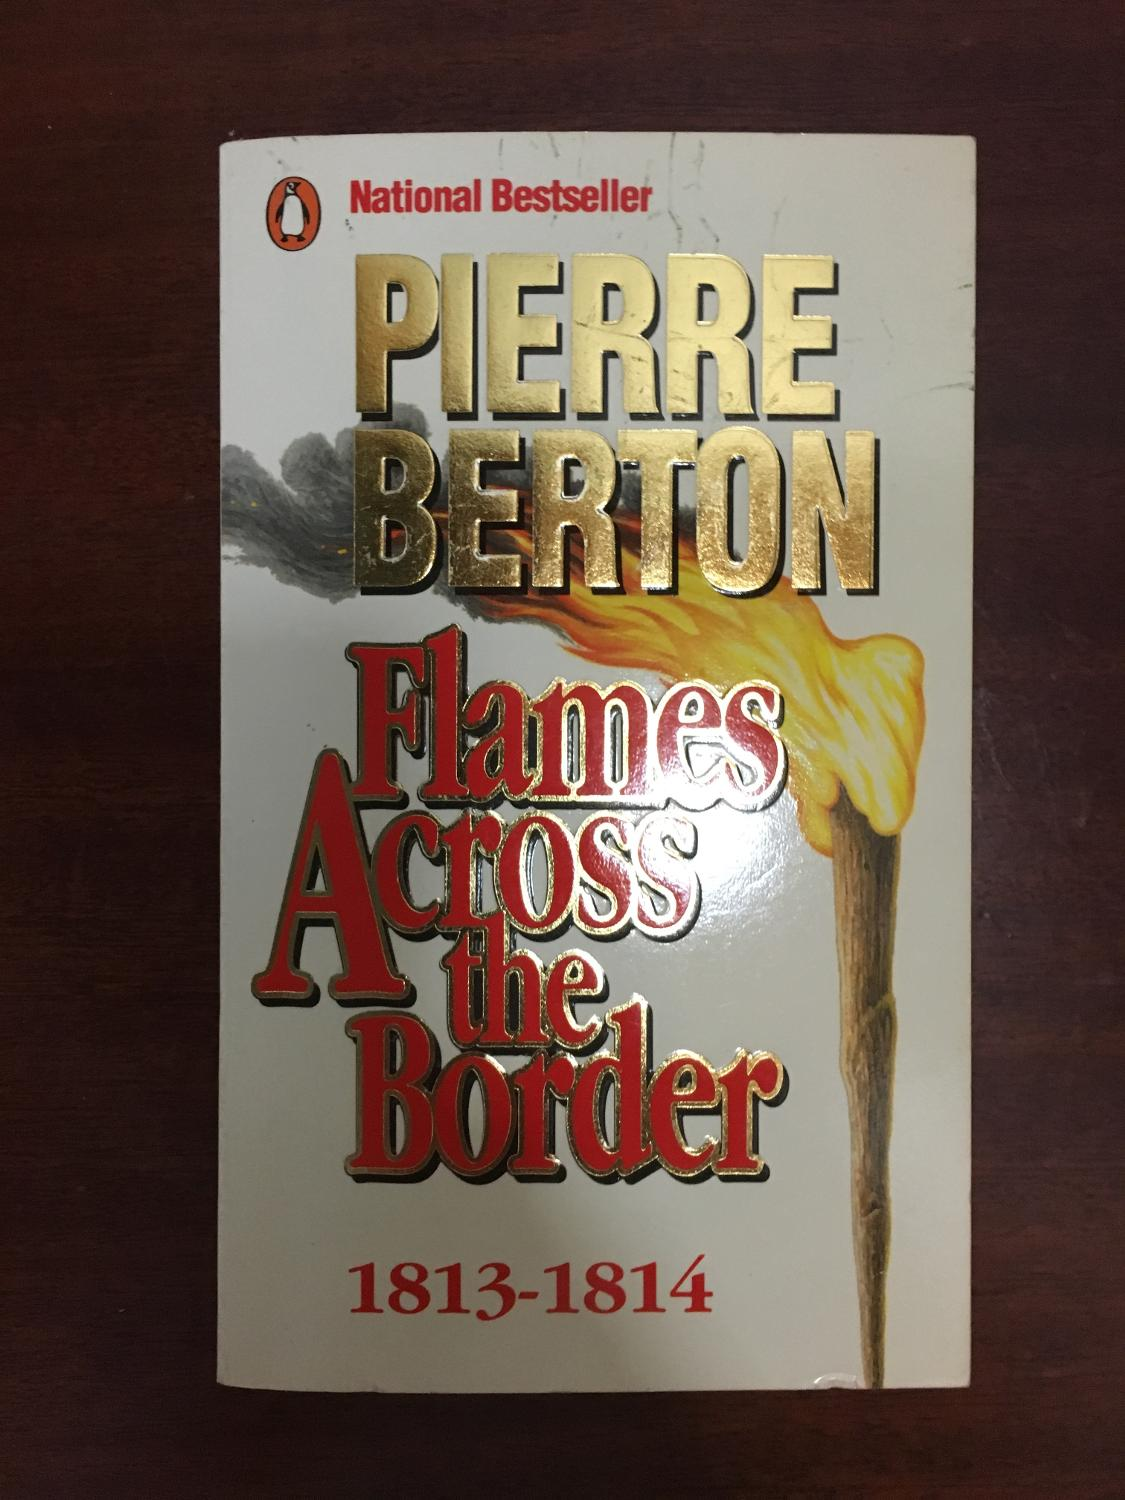 Best Flames Across The Border, 1813-1814 for sale in Yorkville, Ontario for  2018